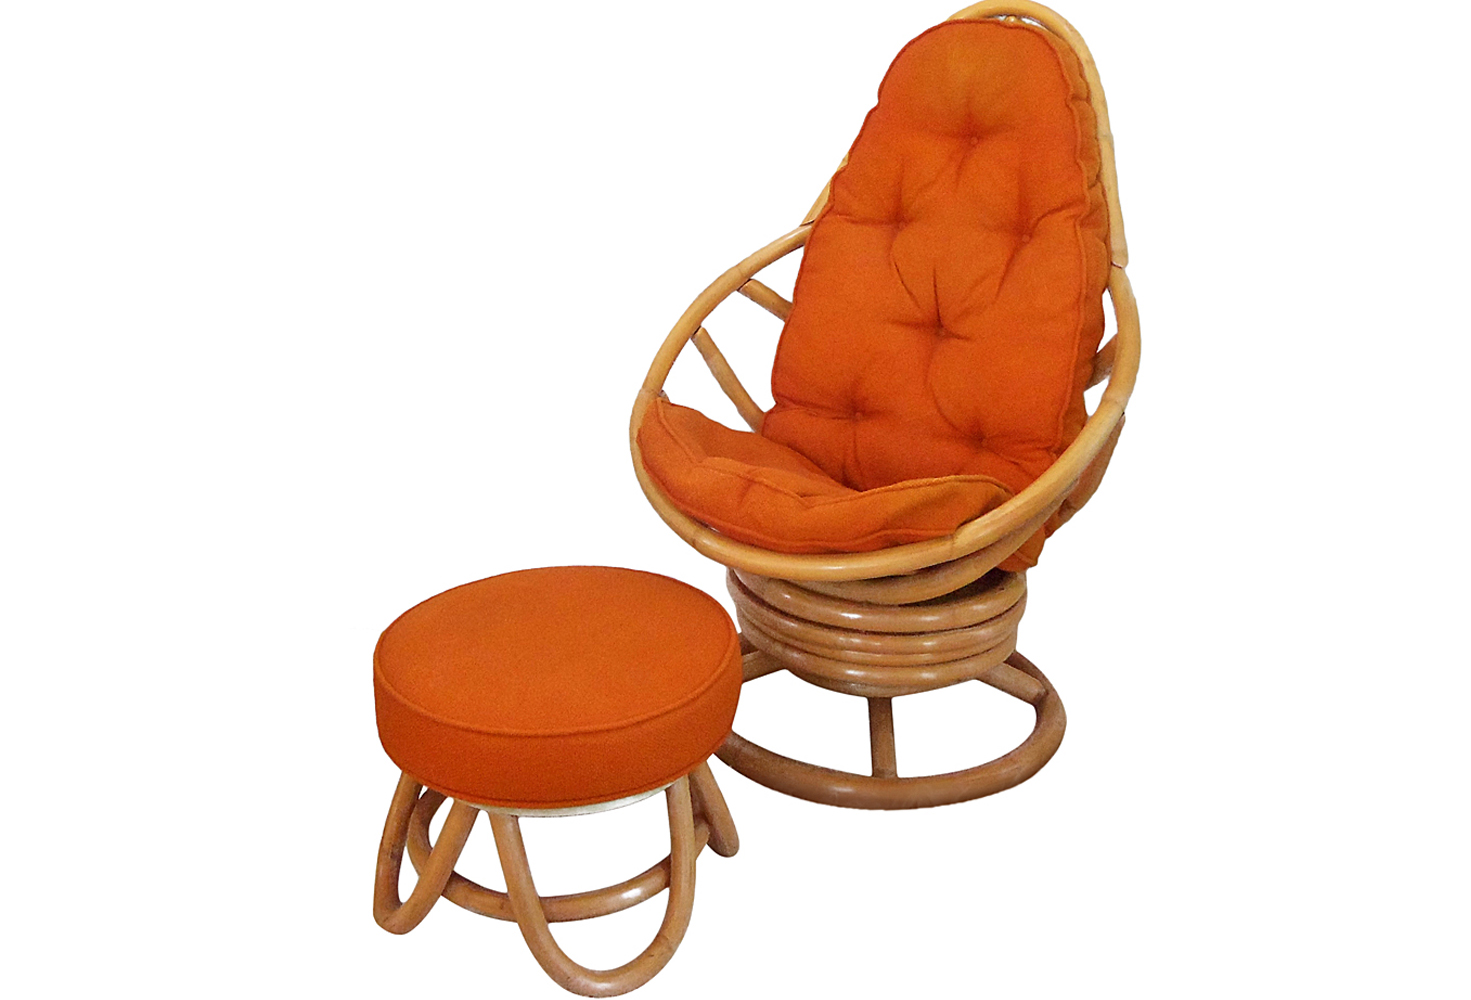 Rattan Swivel Rocker | Cushion for Rattan Swivel Rocker | Papasan Swivel Chair Cushion